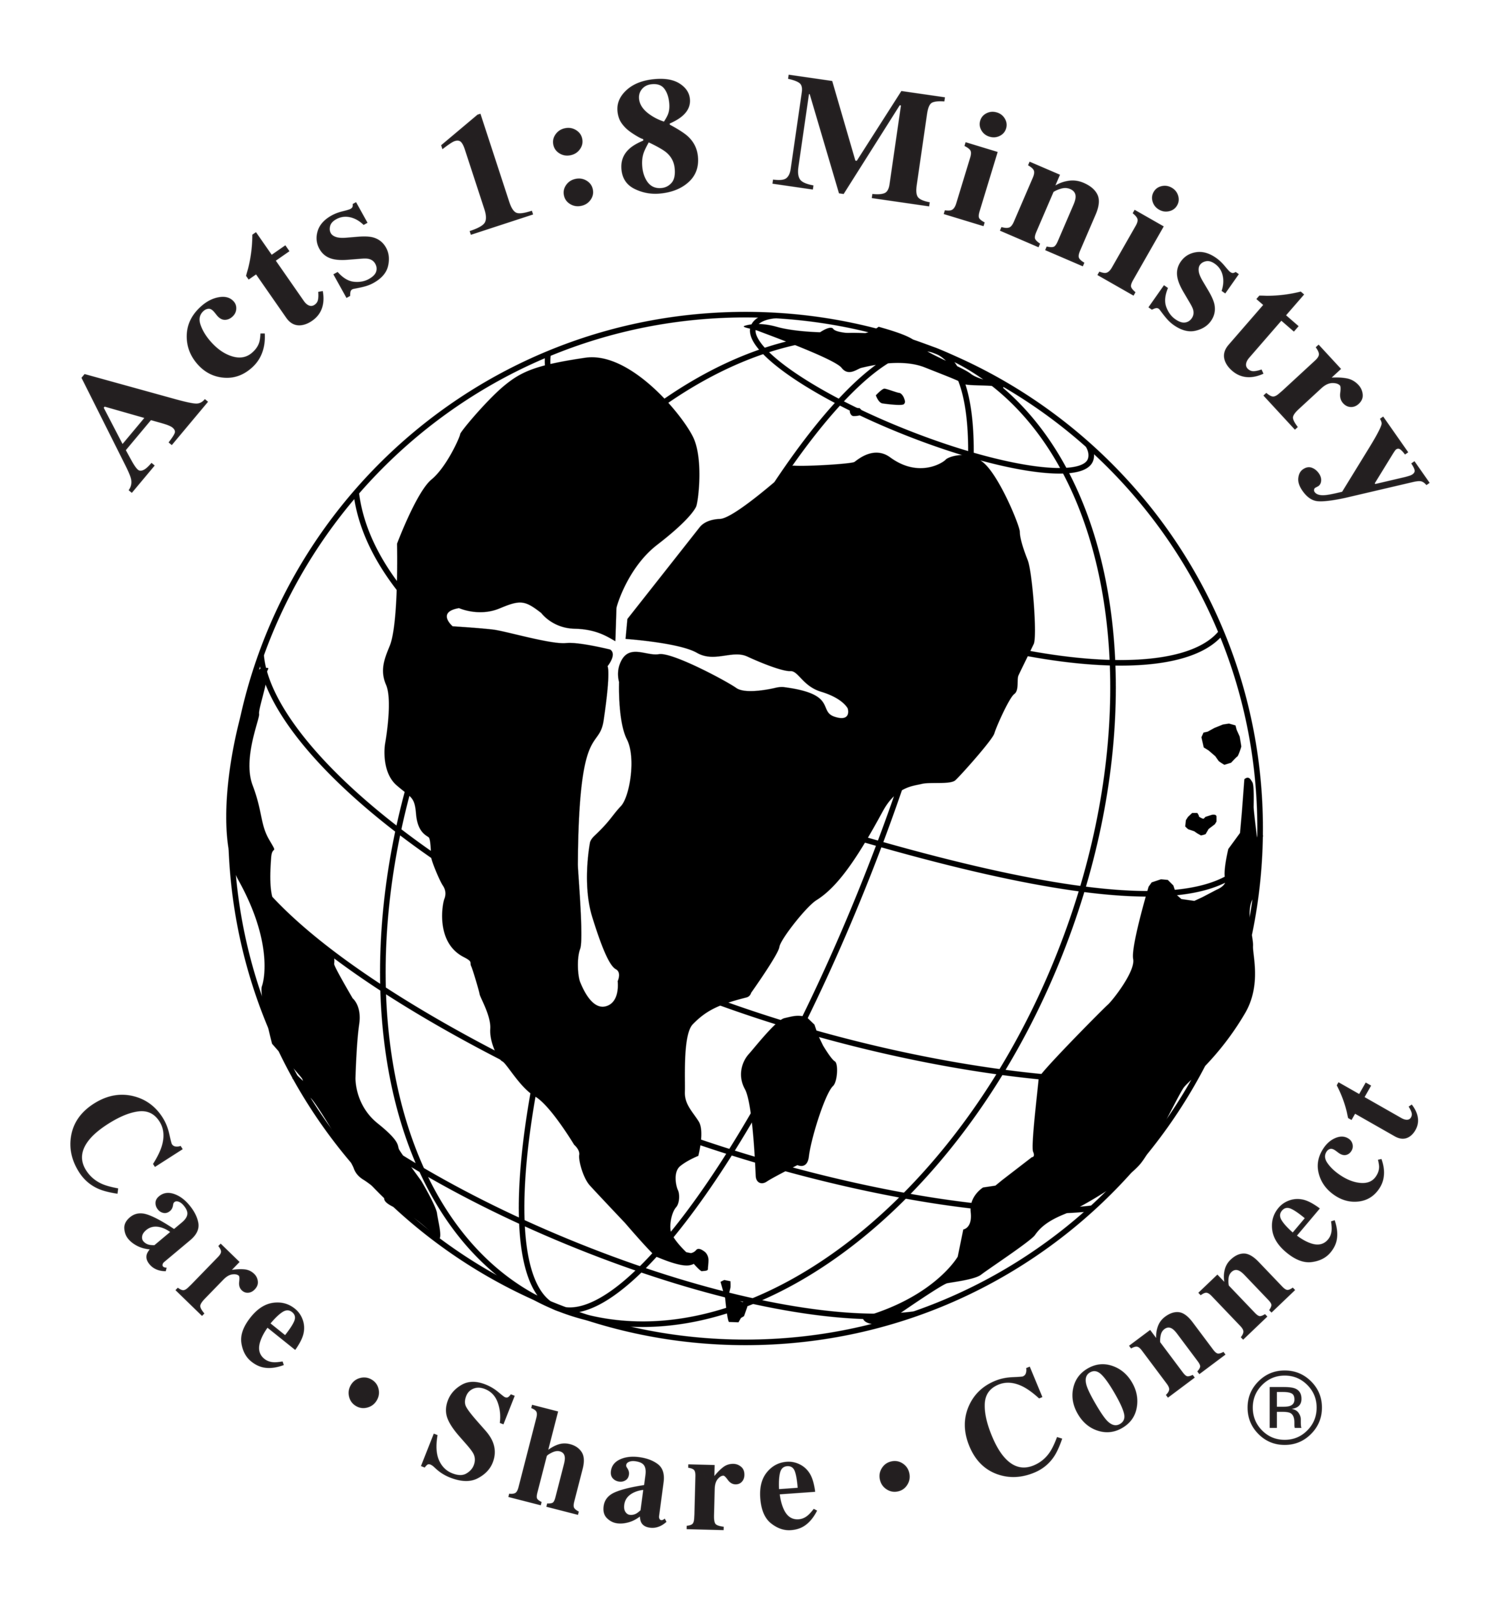 Acts 1:8 Ministry®